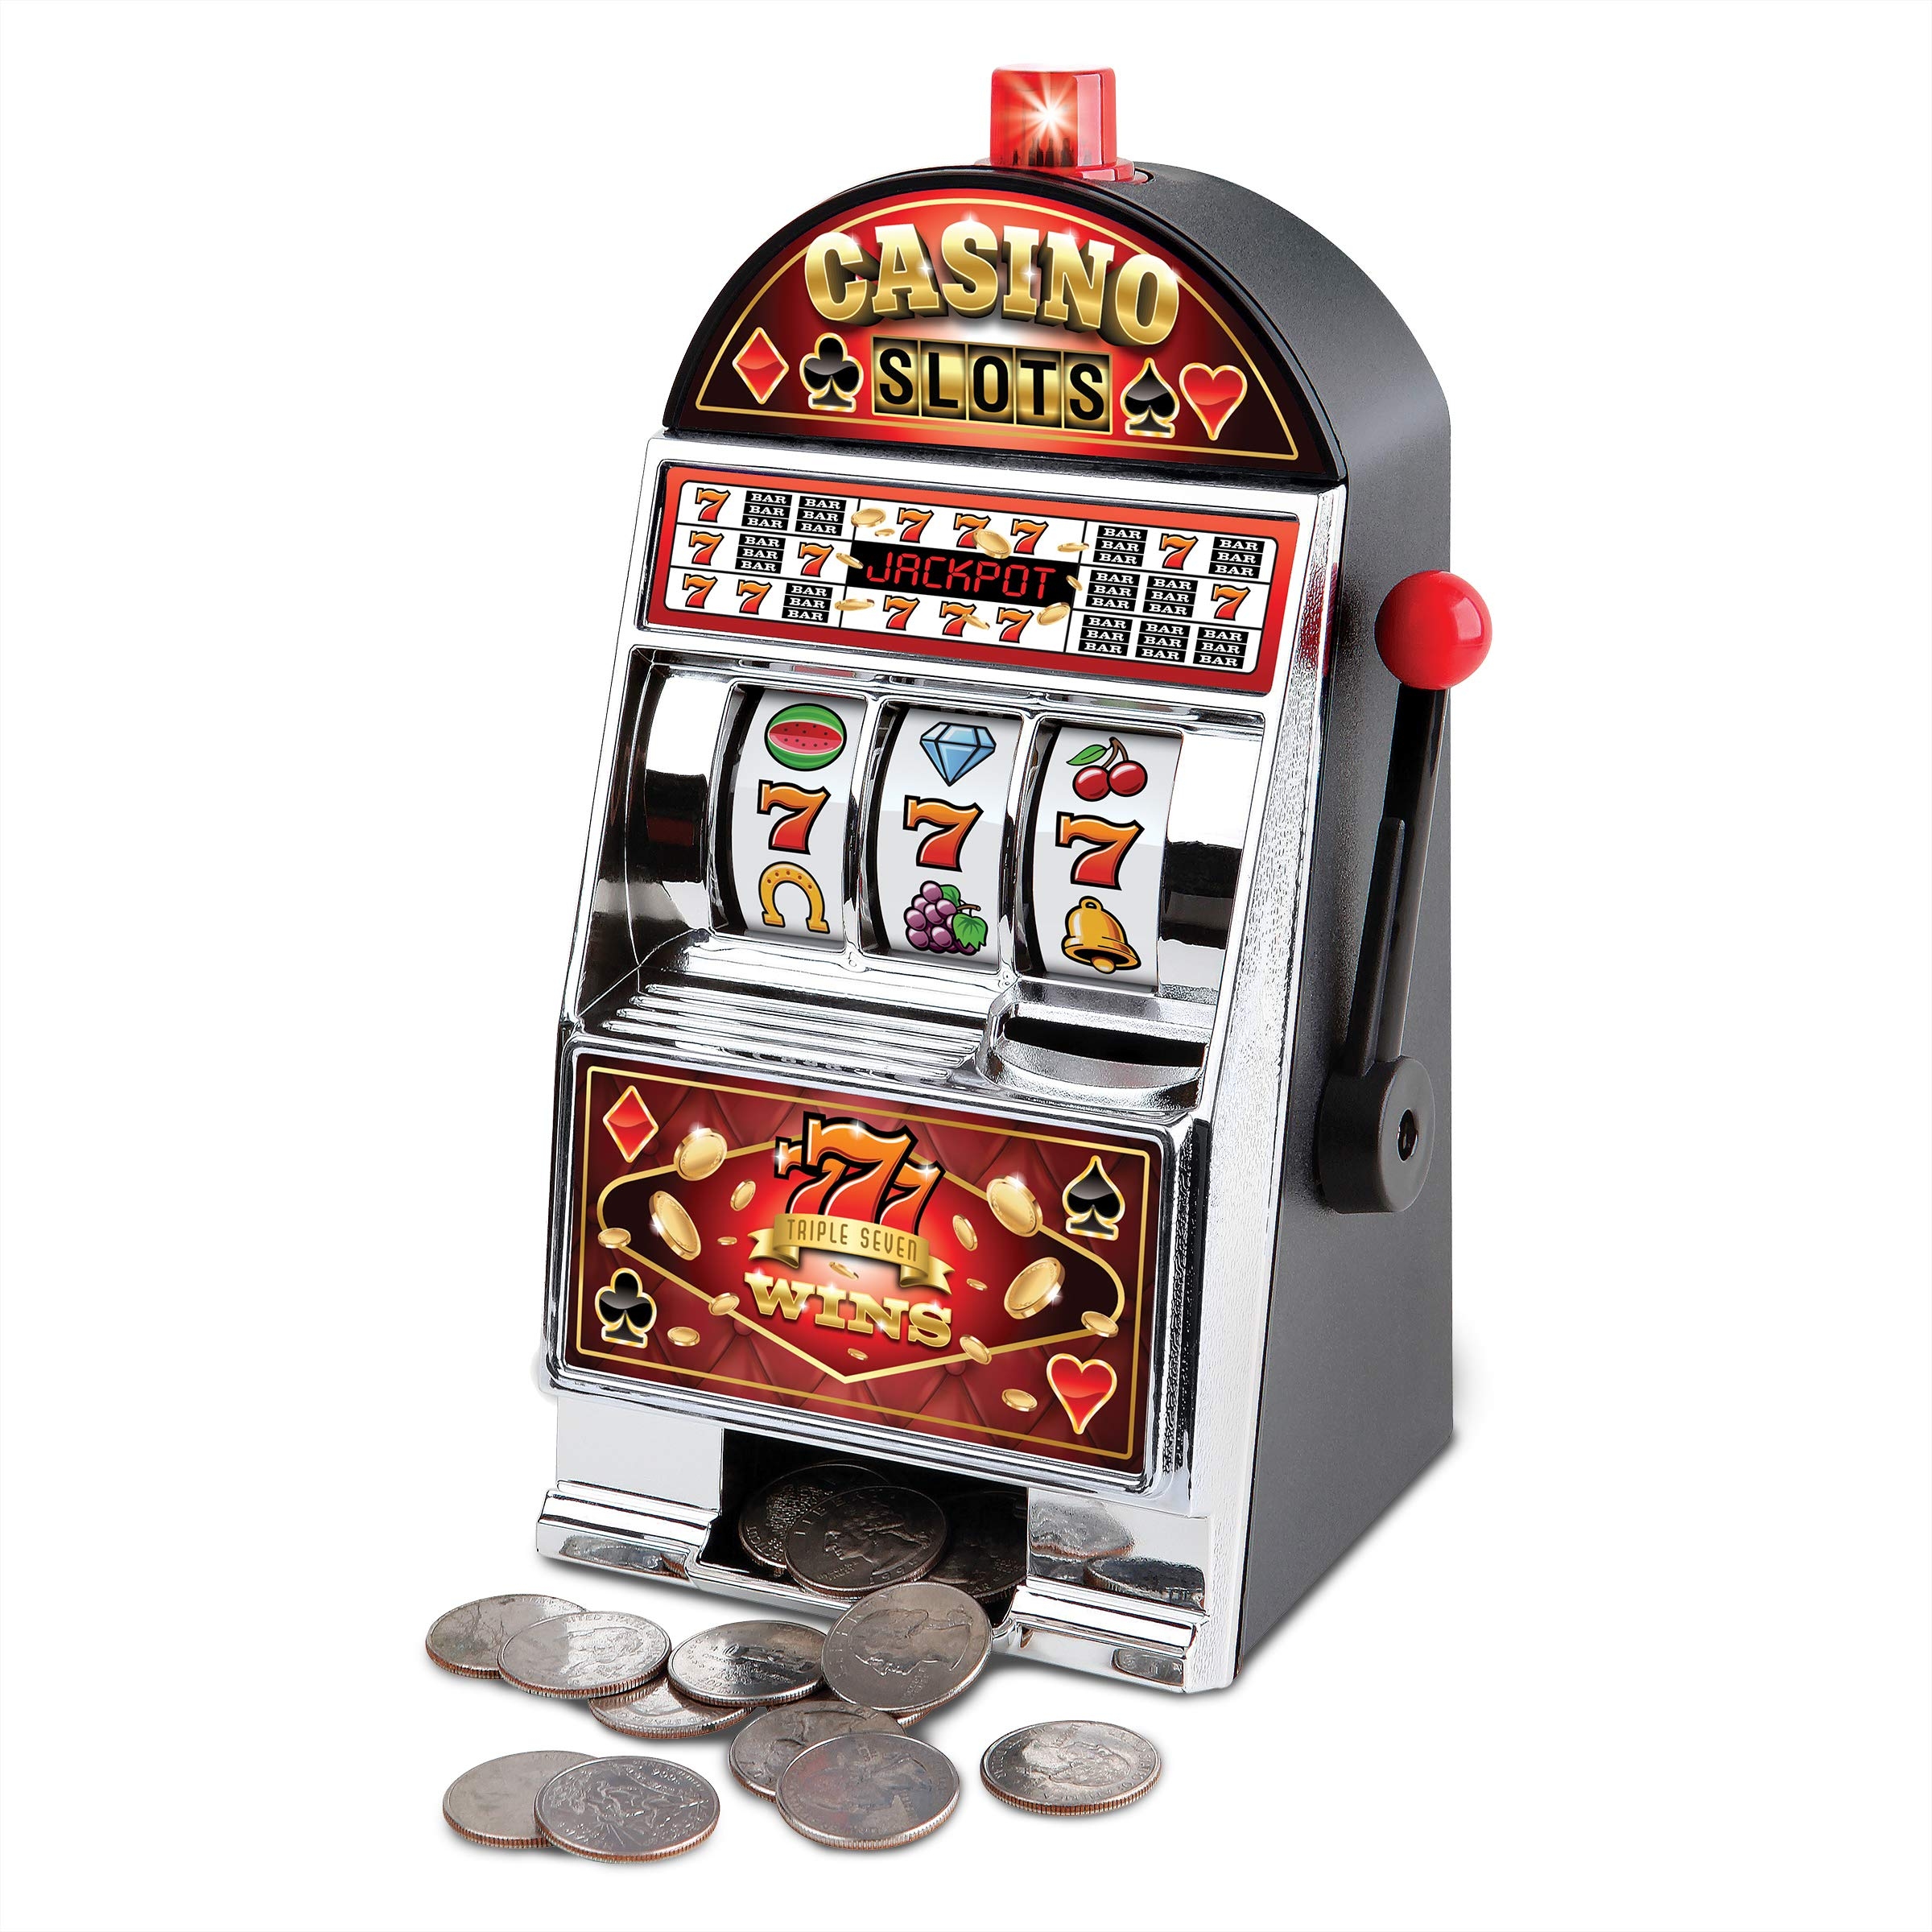 Sharper Image Electronic Casino Slot Machine Coin Bank, Turn Saving to a Game, LED Lights and Sound Effects, Real Spinning Reels, Pays Out on a Win, Fun Piggy Bank, Home Décor for Man Cave or Bar by Sharper Image